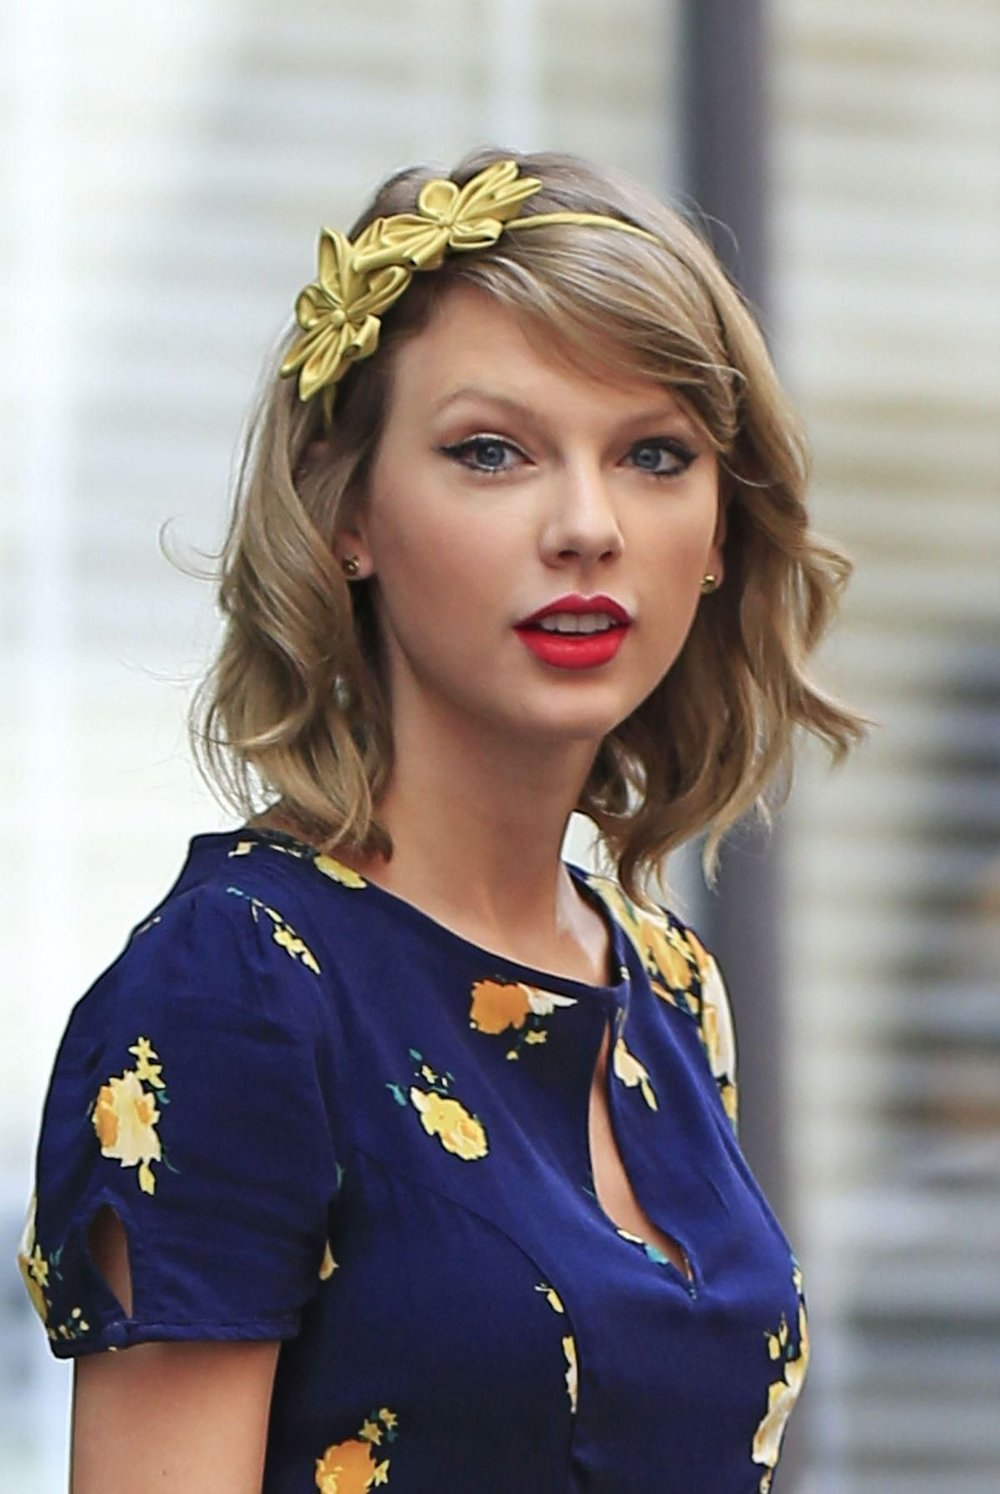 ornate-how-to-style-hair-accessories-headbands-hairstyles-ways-to-wear-taylor-swift-yellow-floral-flowers-lob-wavy.jpg